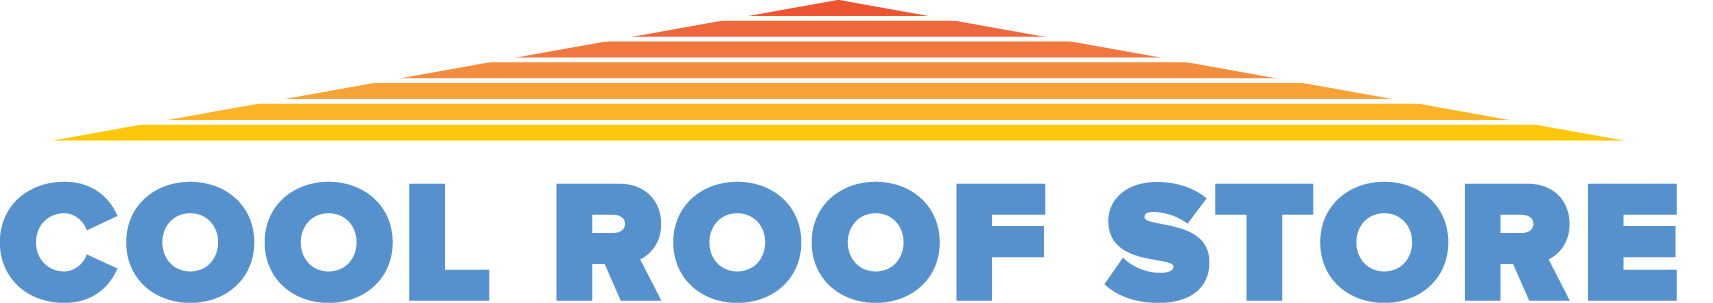 Cool Roof Store Logo